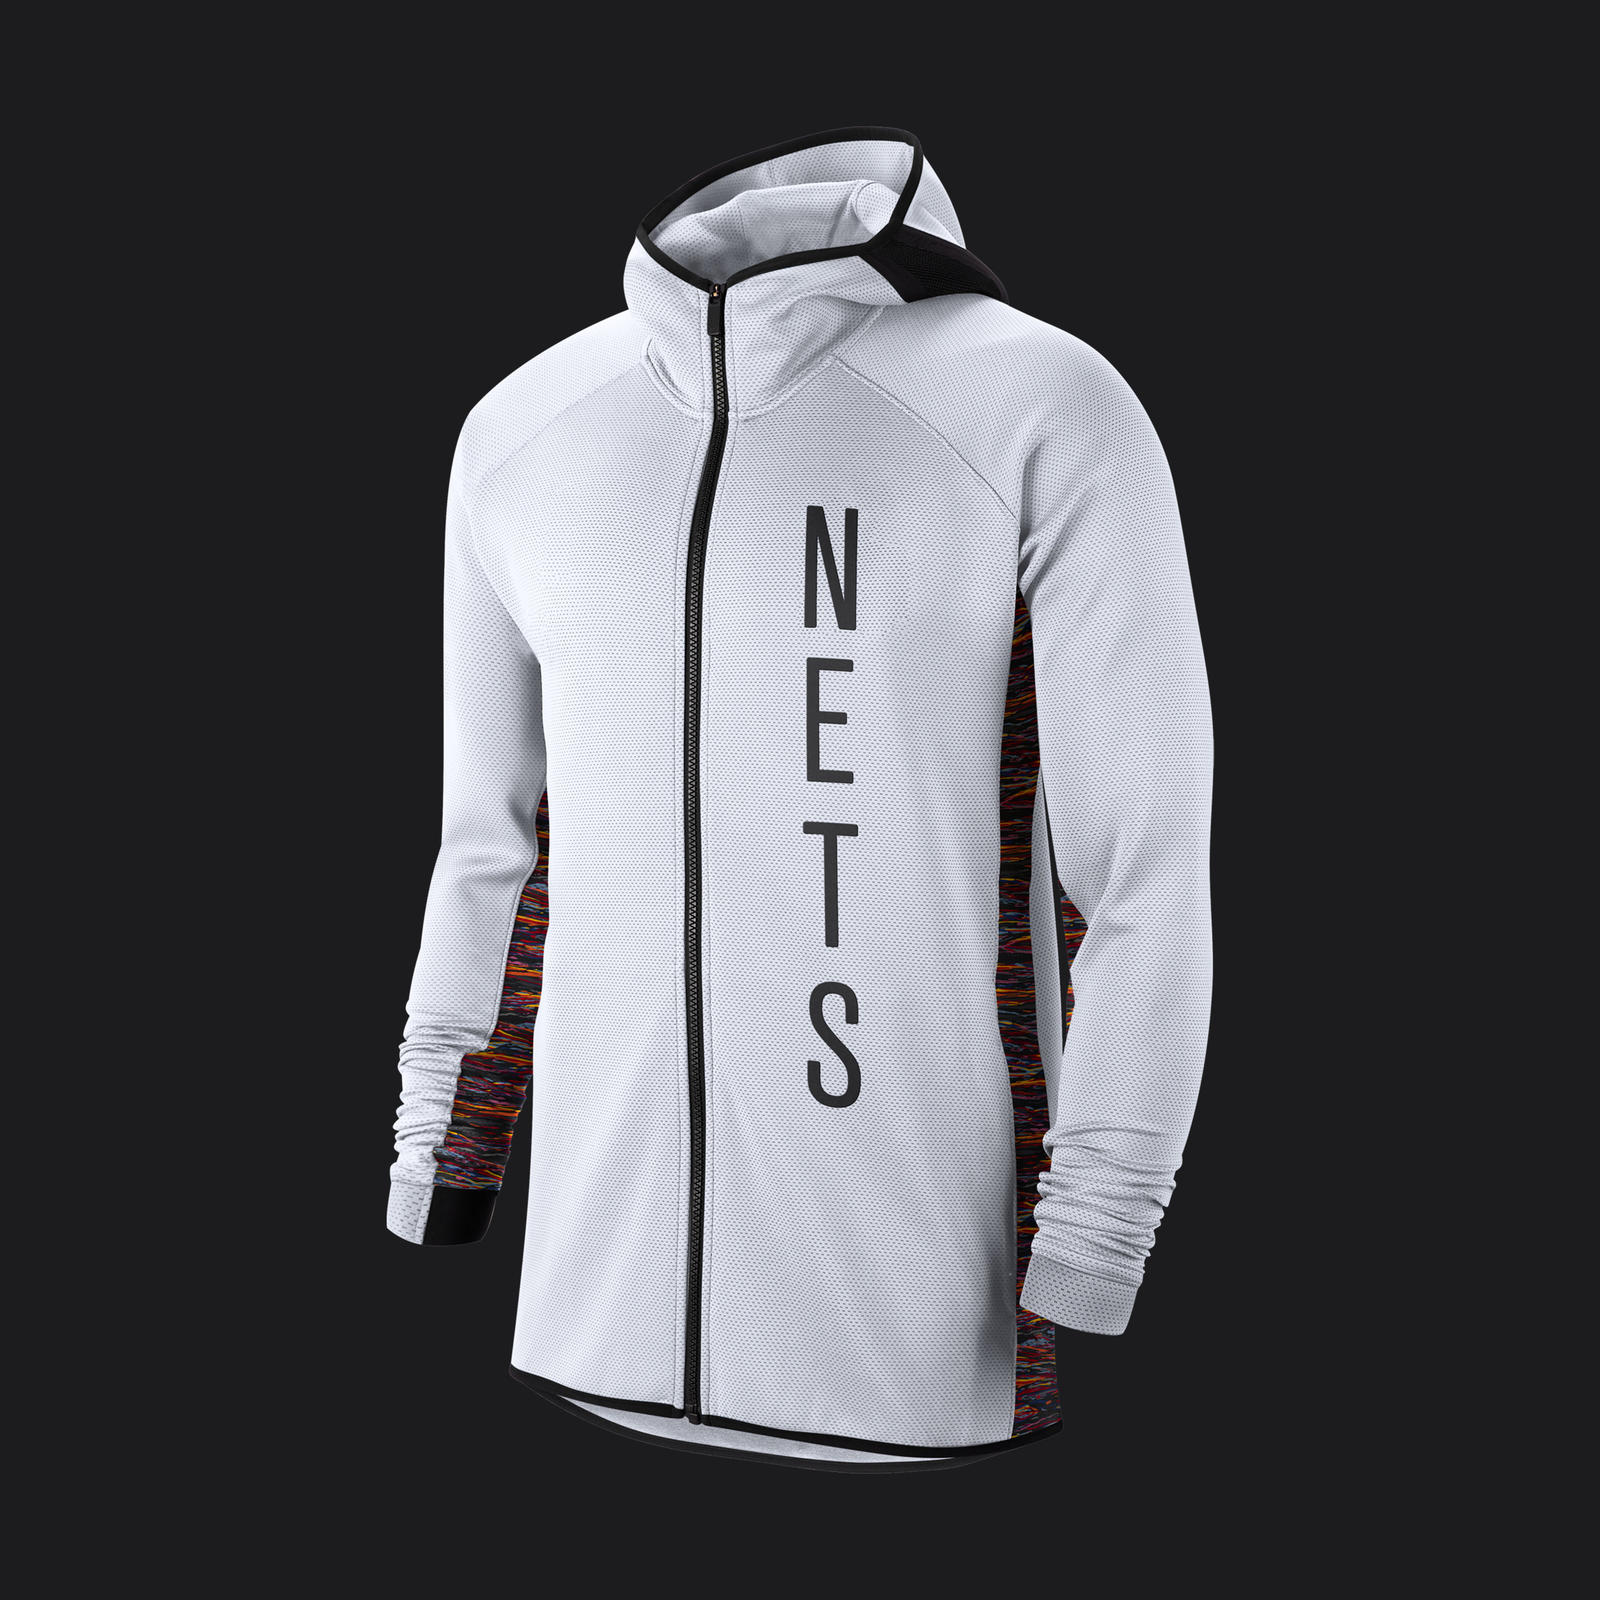 Nike NBA Earned Edition Showtime Hoodies 2019-20 Official Images 29